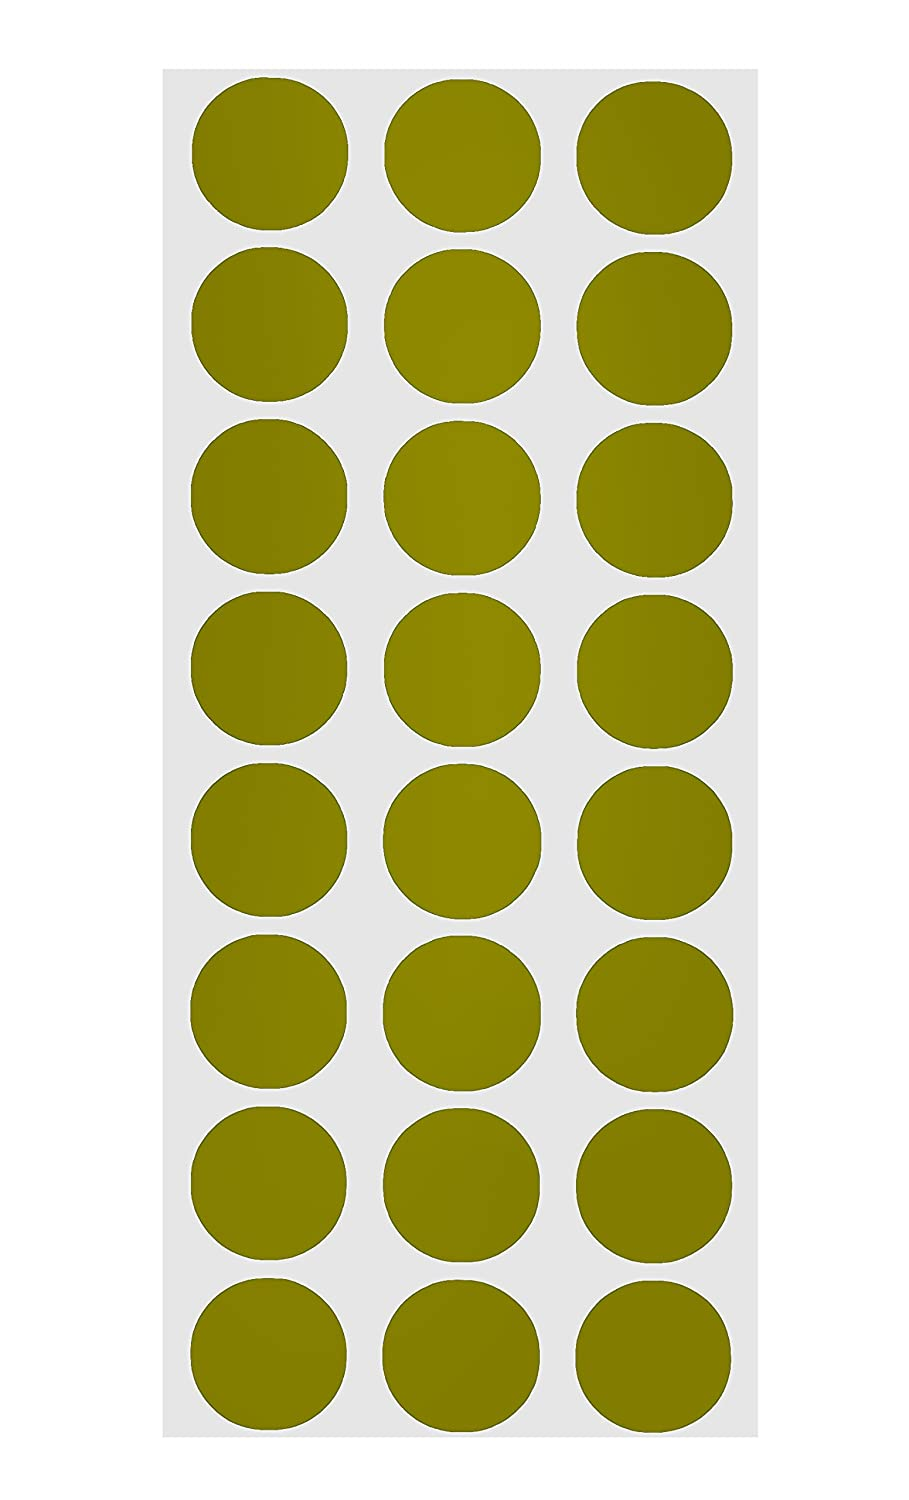 Olive Color Code Amazon.com : ChromaLabel 1-2 inch Color-Code Dot Labels on Sheets | 1,  200-Pack (Olive) : Office Products